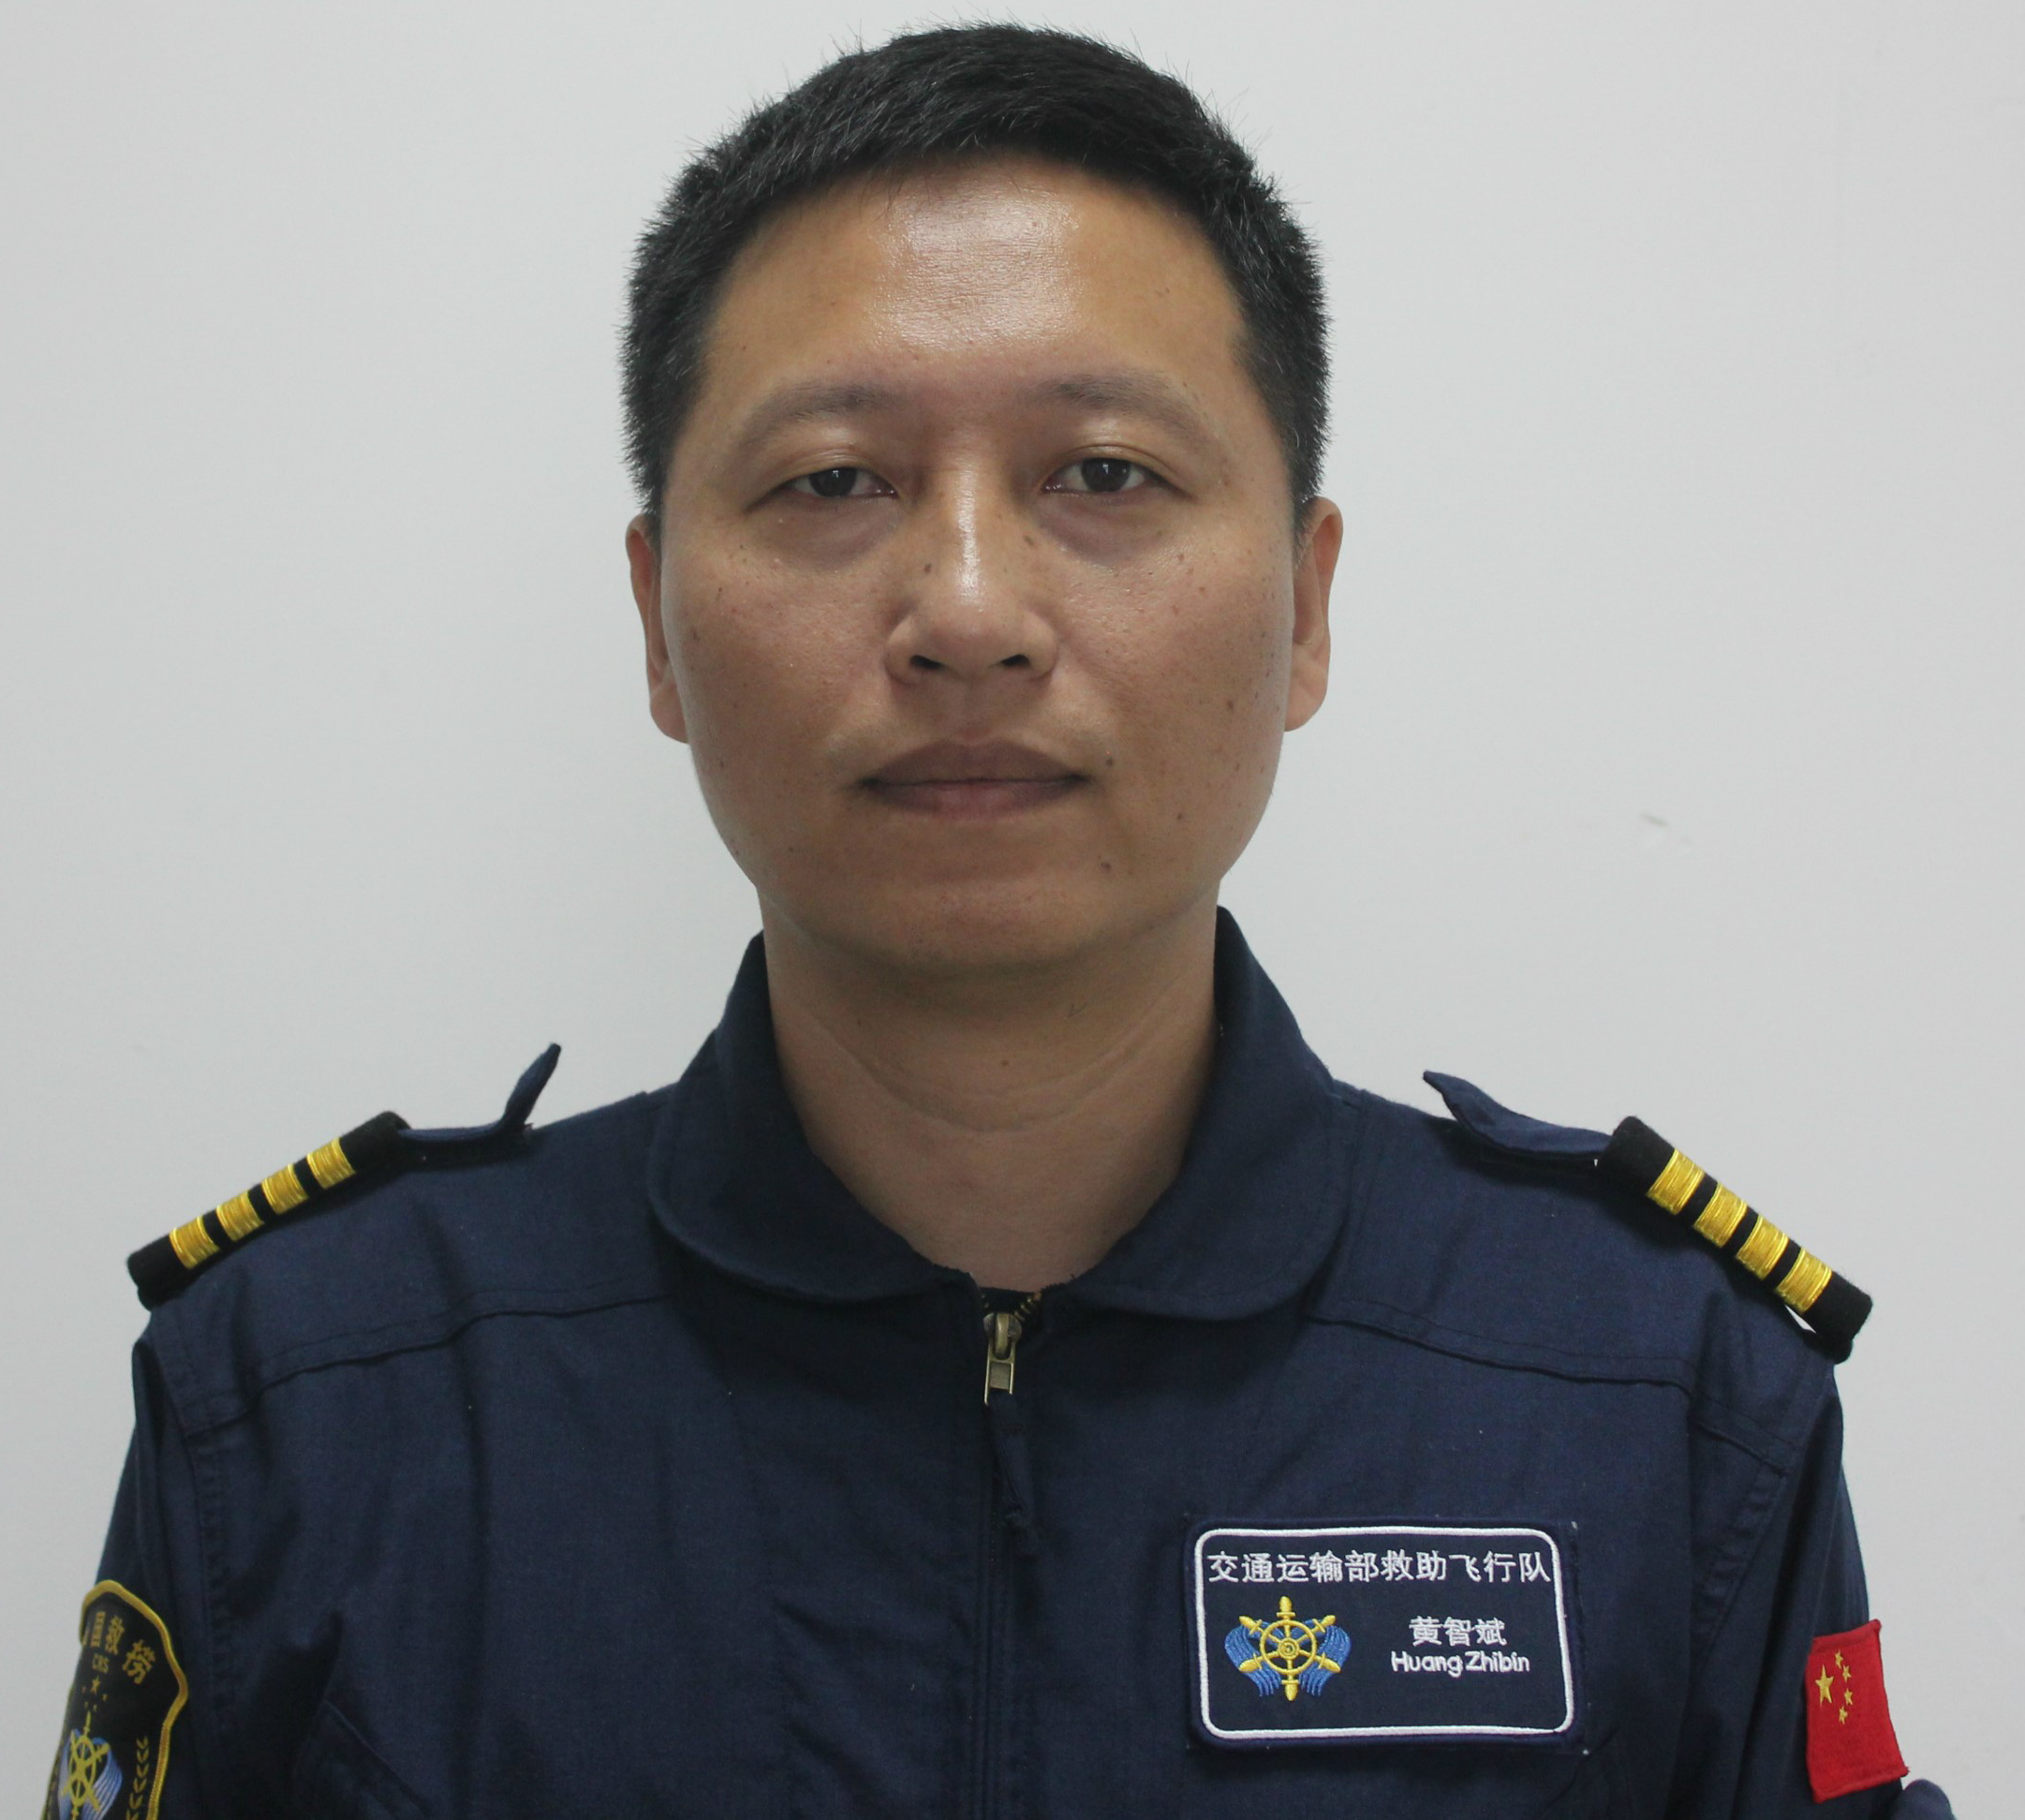 IMRF Awards 2019 - Finalist - Captain Huang Zhibin